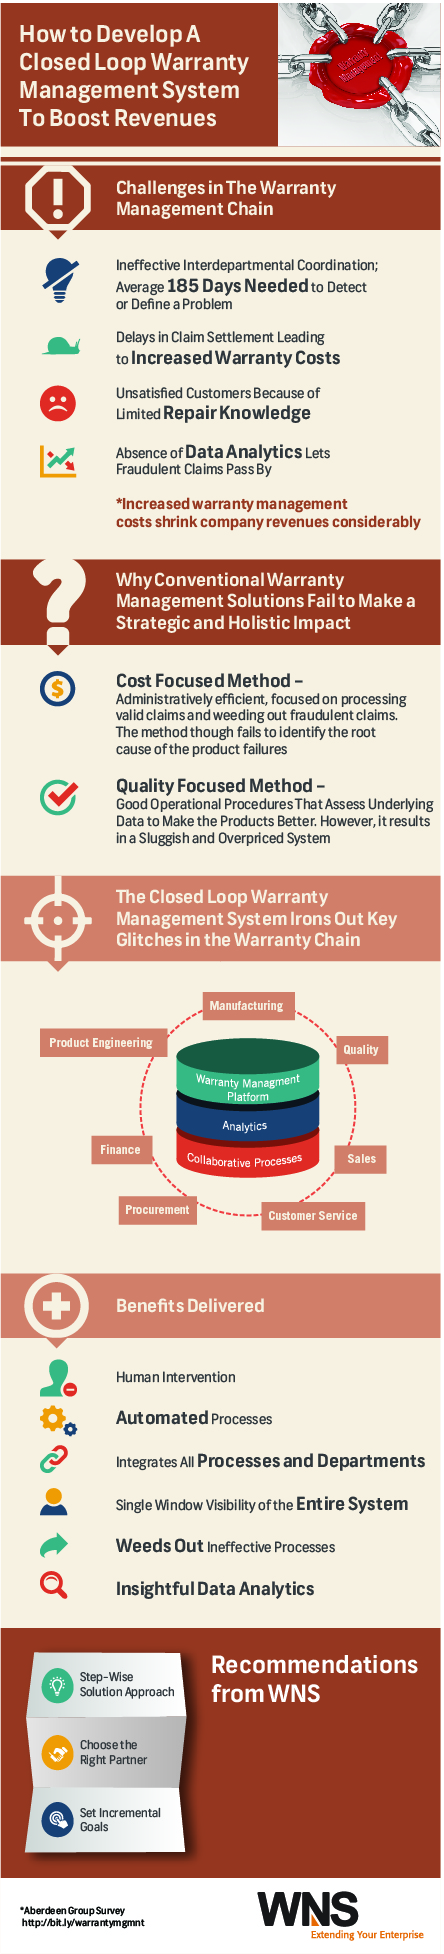 How to Develop a Closed Loop Warranty Management System to Boost Revenues